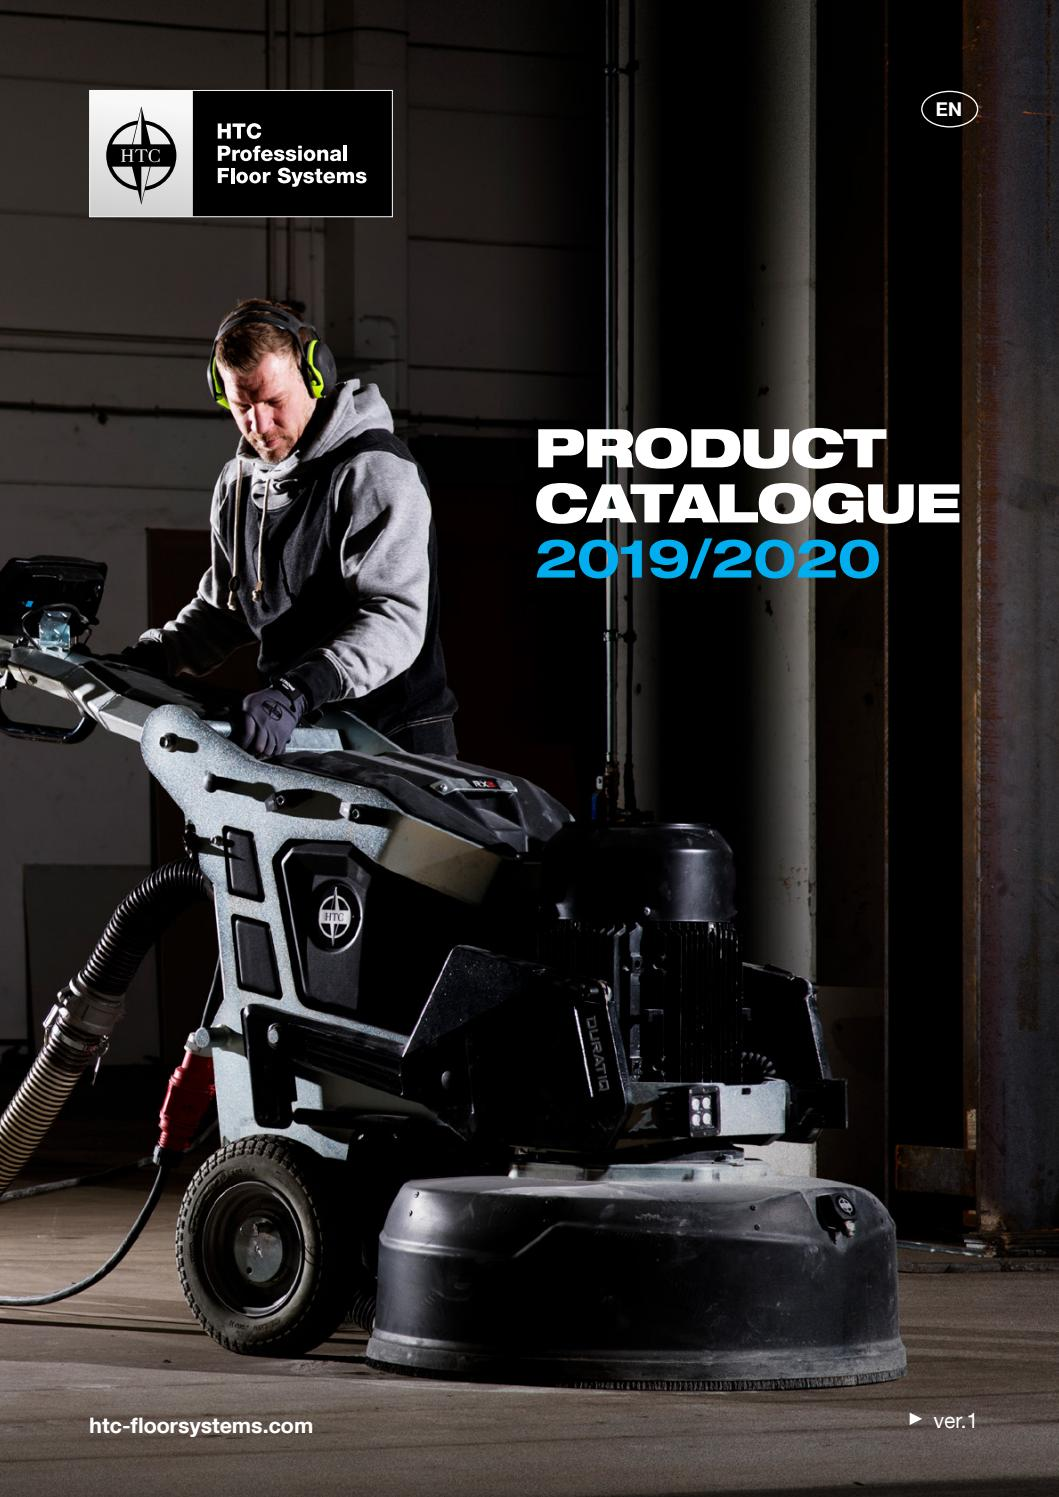 Htc Product Catalogue 2019 2020 En By Htc Floor Systems Issuu